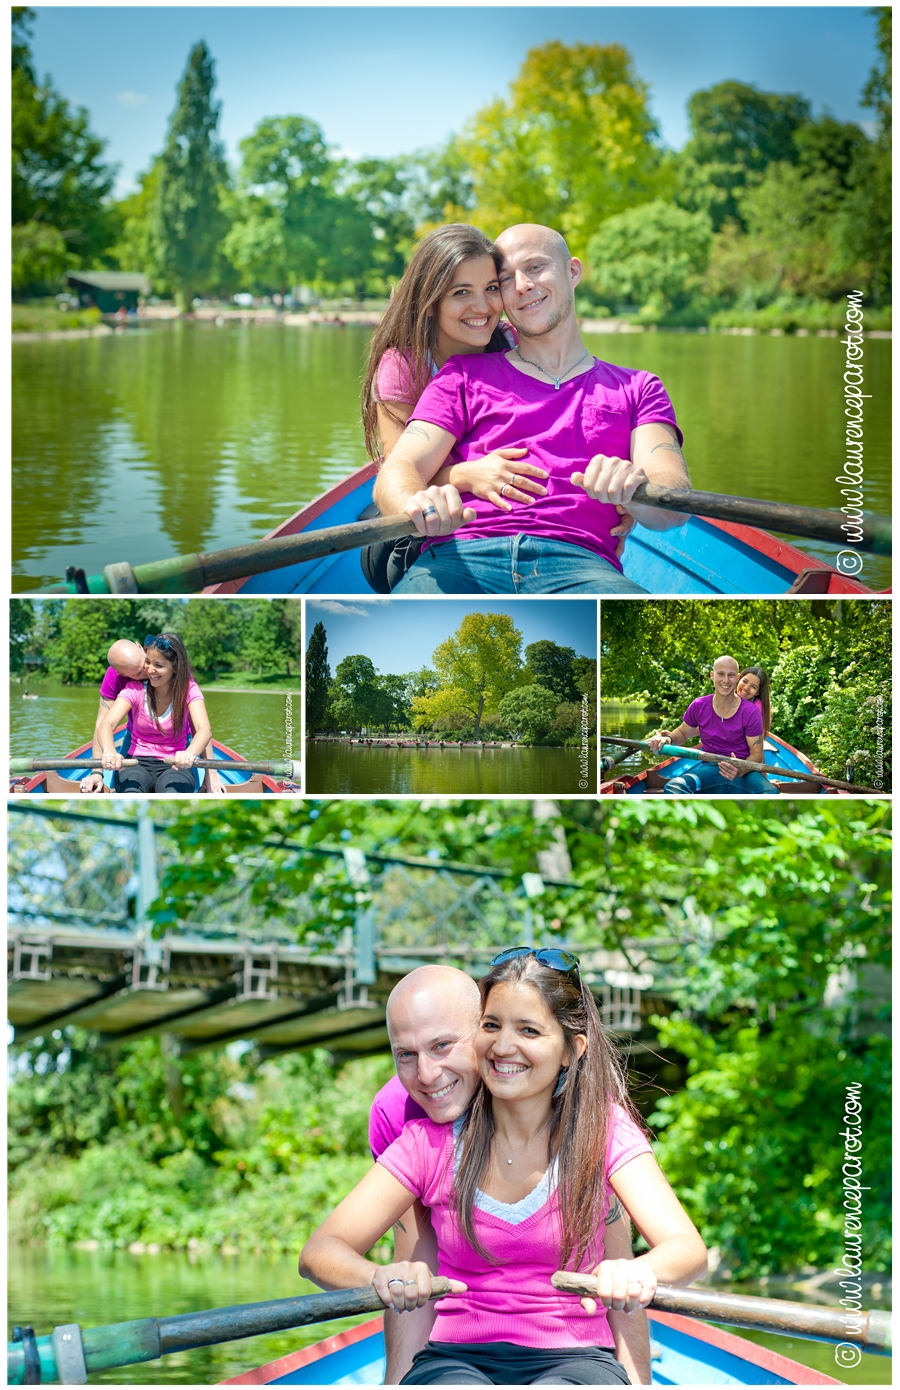 seance photo couple engagement mariage laurence parot photographe bois de vincennes